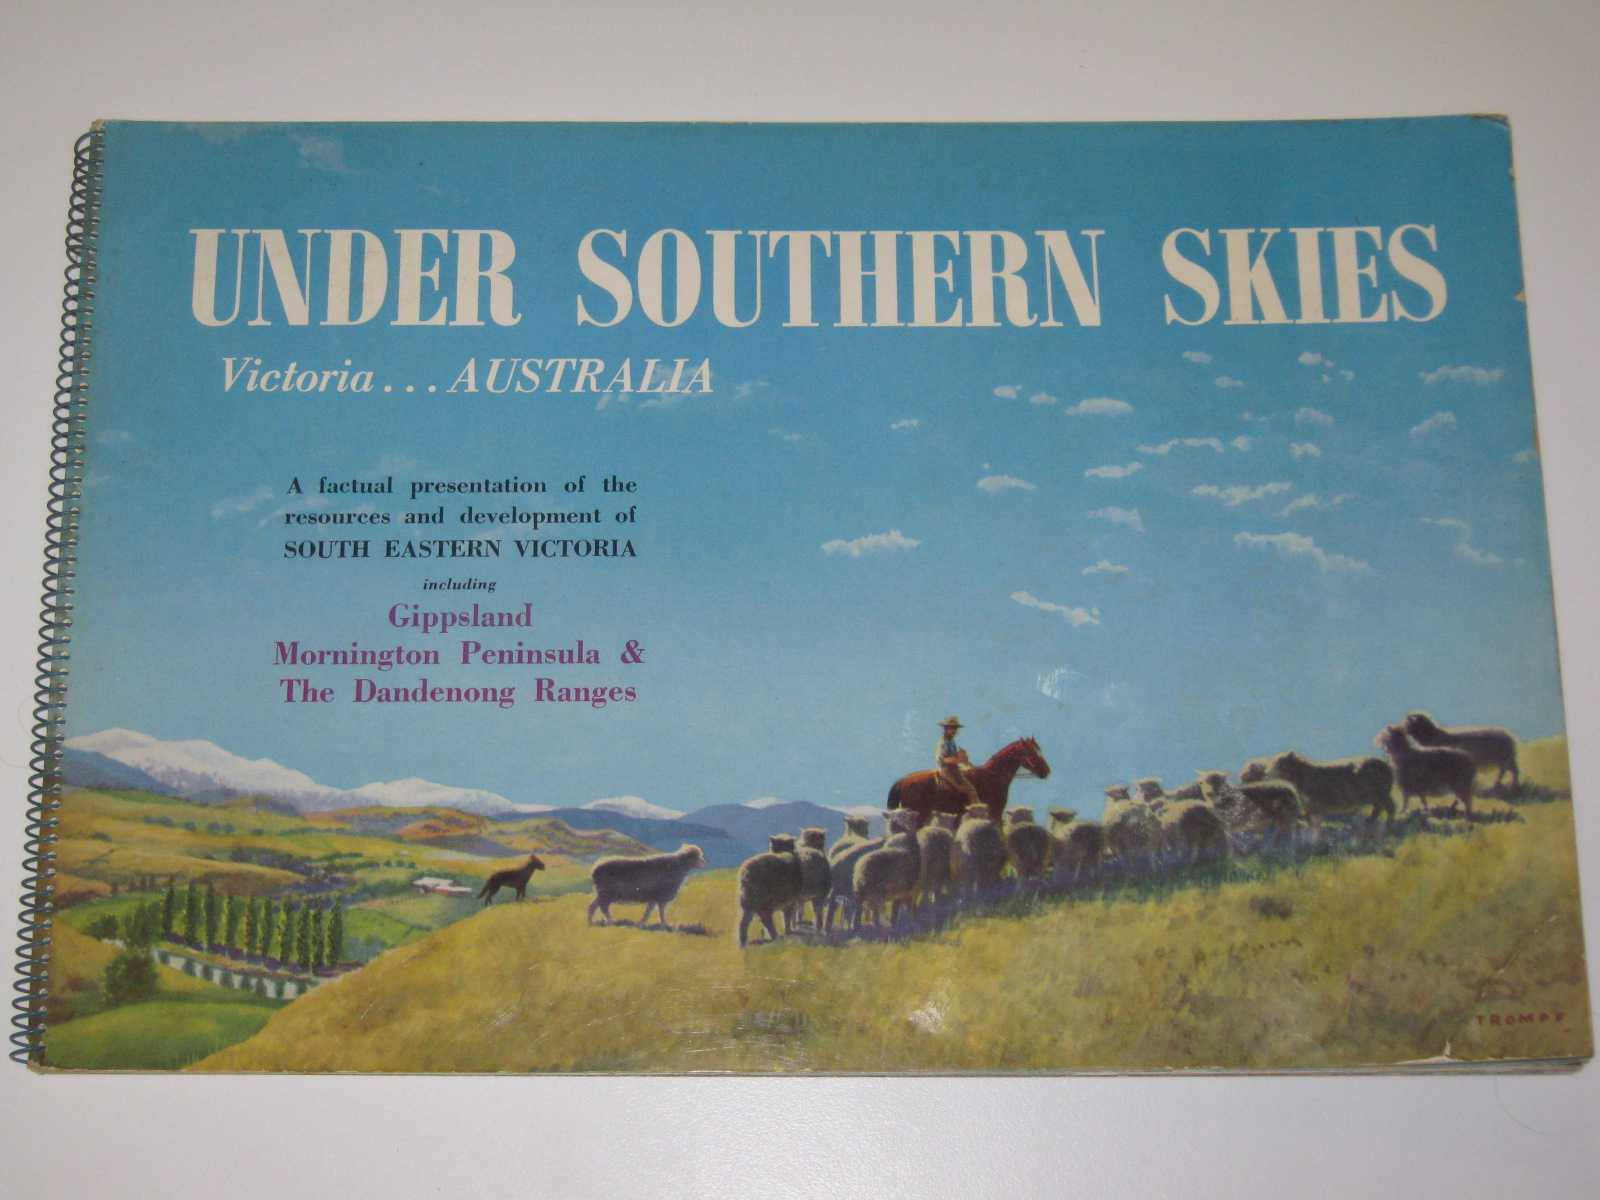 Under Southern Skies : Victoria...Australia, Author Not Stated